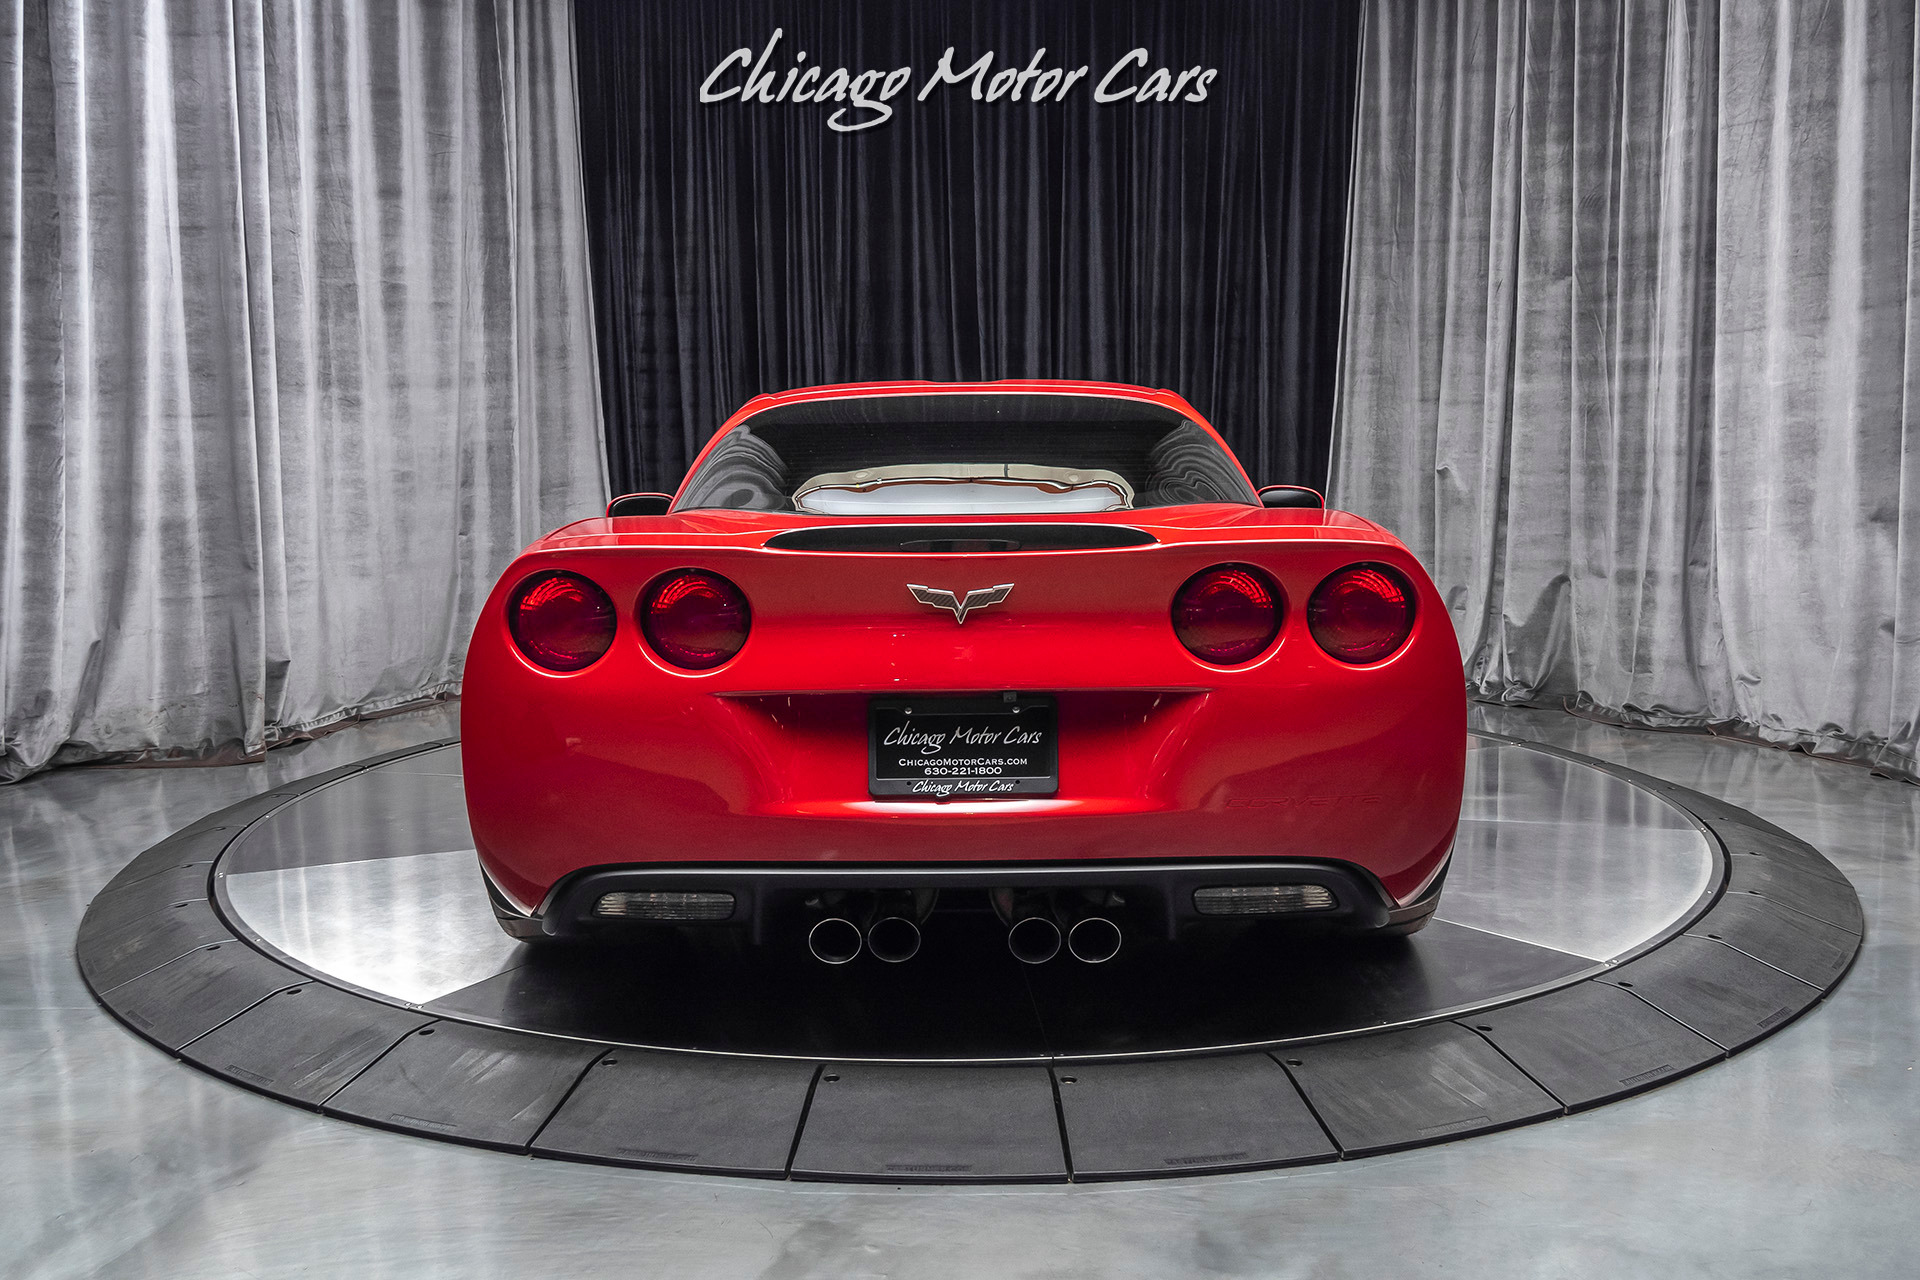 Used-2008-Chevrolet-Corvette-Z06-ONLY-16K-MILES---SUPERCHARGED-800HP-TUNED-BY-SPEED-INC